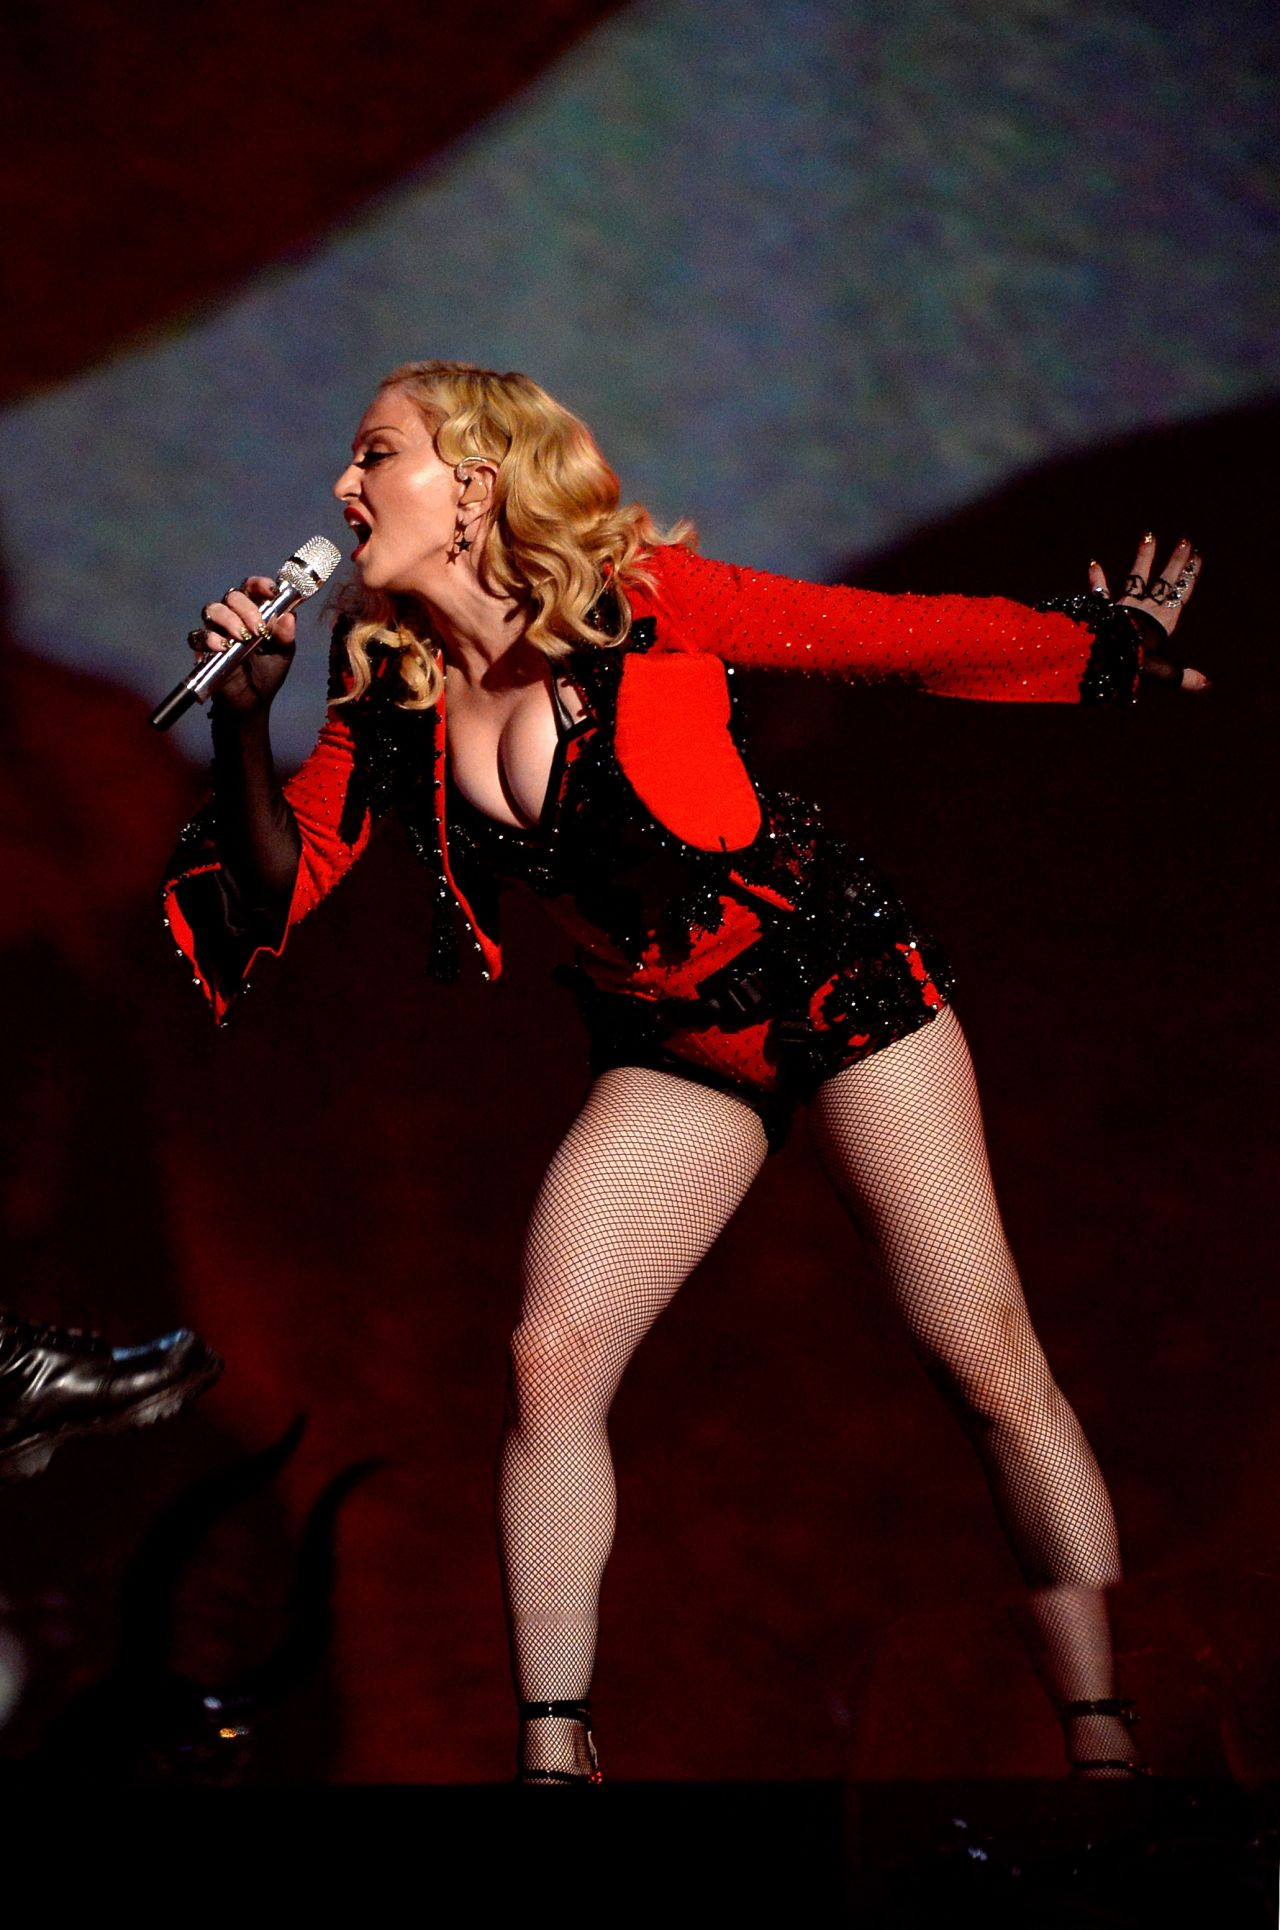 2015 Los Angeles Film Festival: Performs At 2015 Grammy Awards In Los Angeles